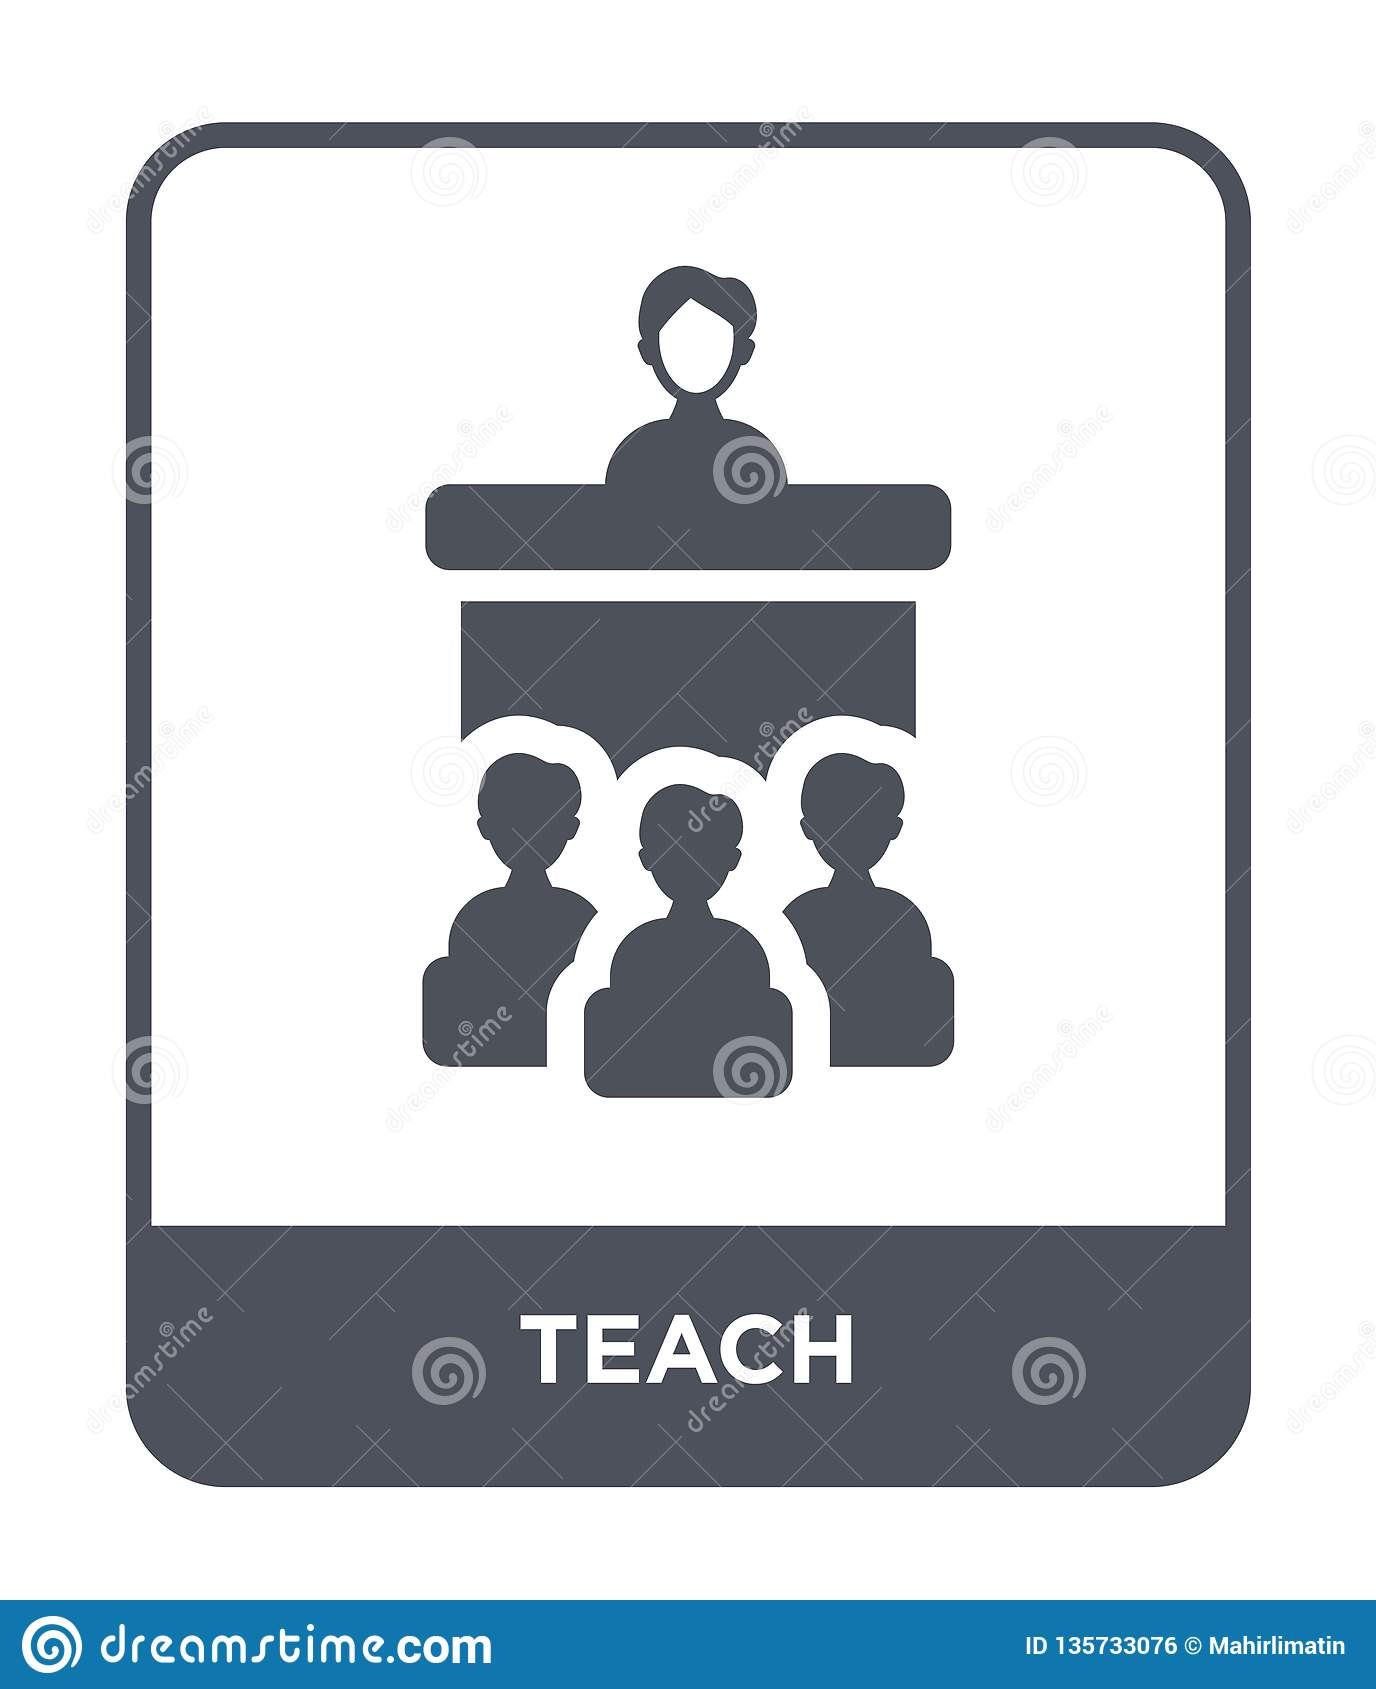 teach icon in trendy design style. teach icon isolated on white background. teach vector icon simple and modern flat symbol for